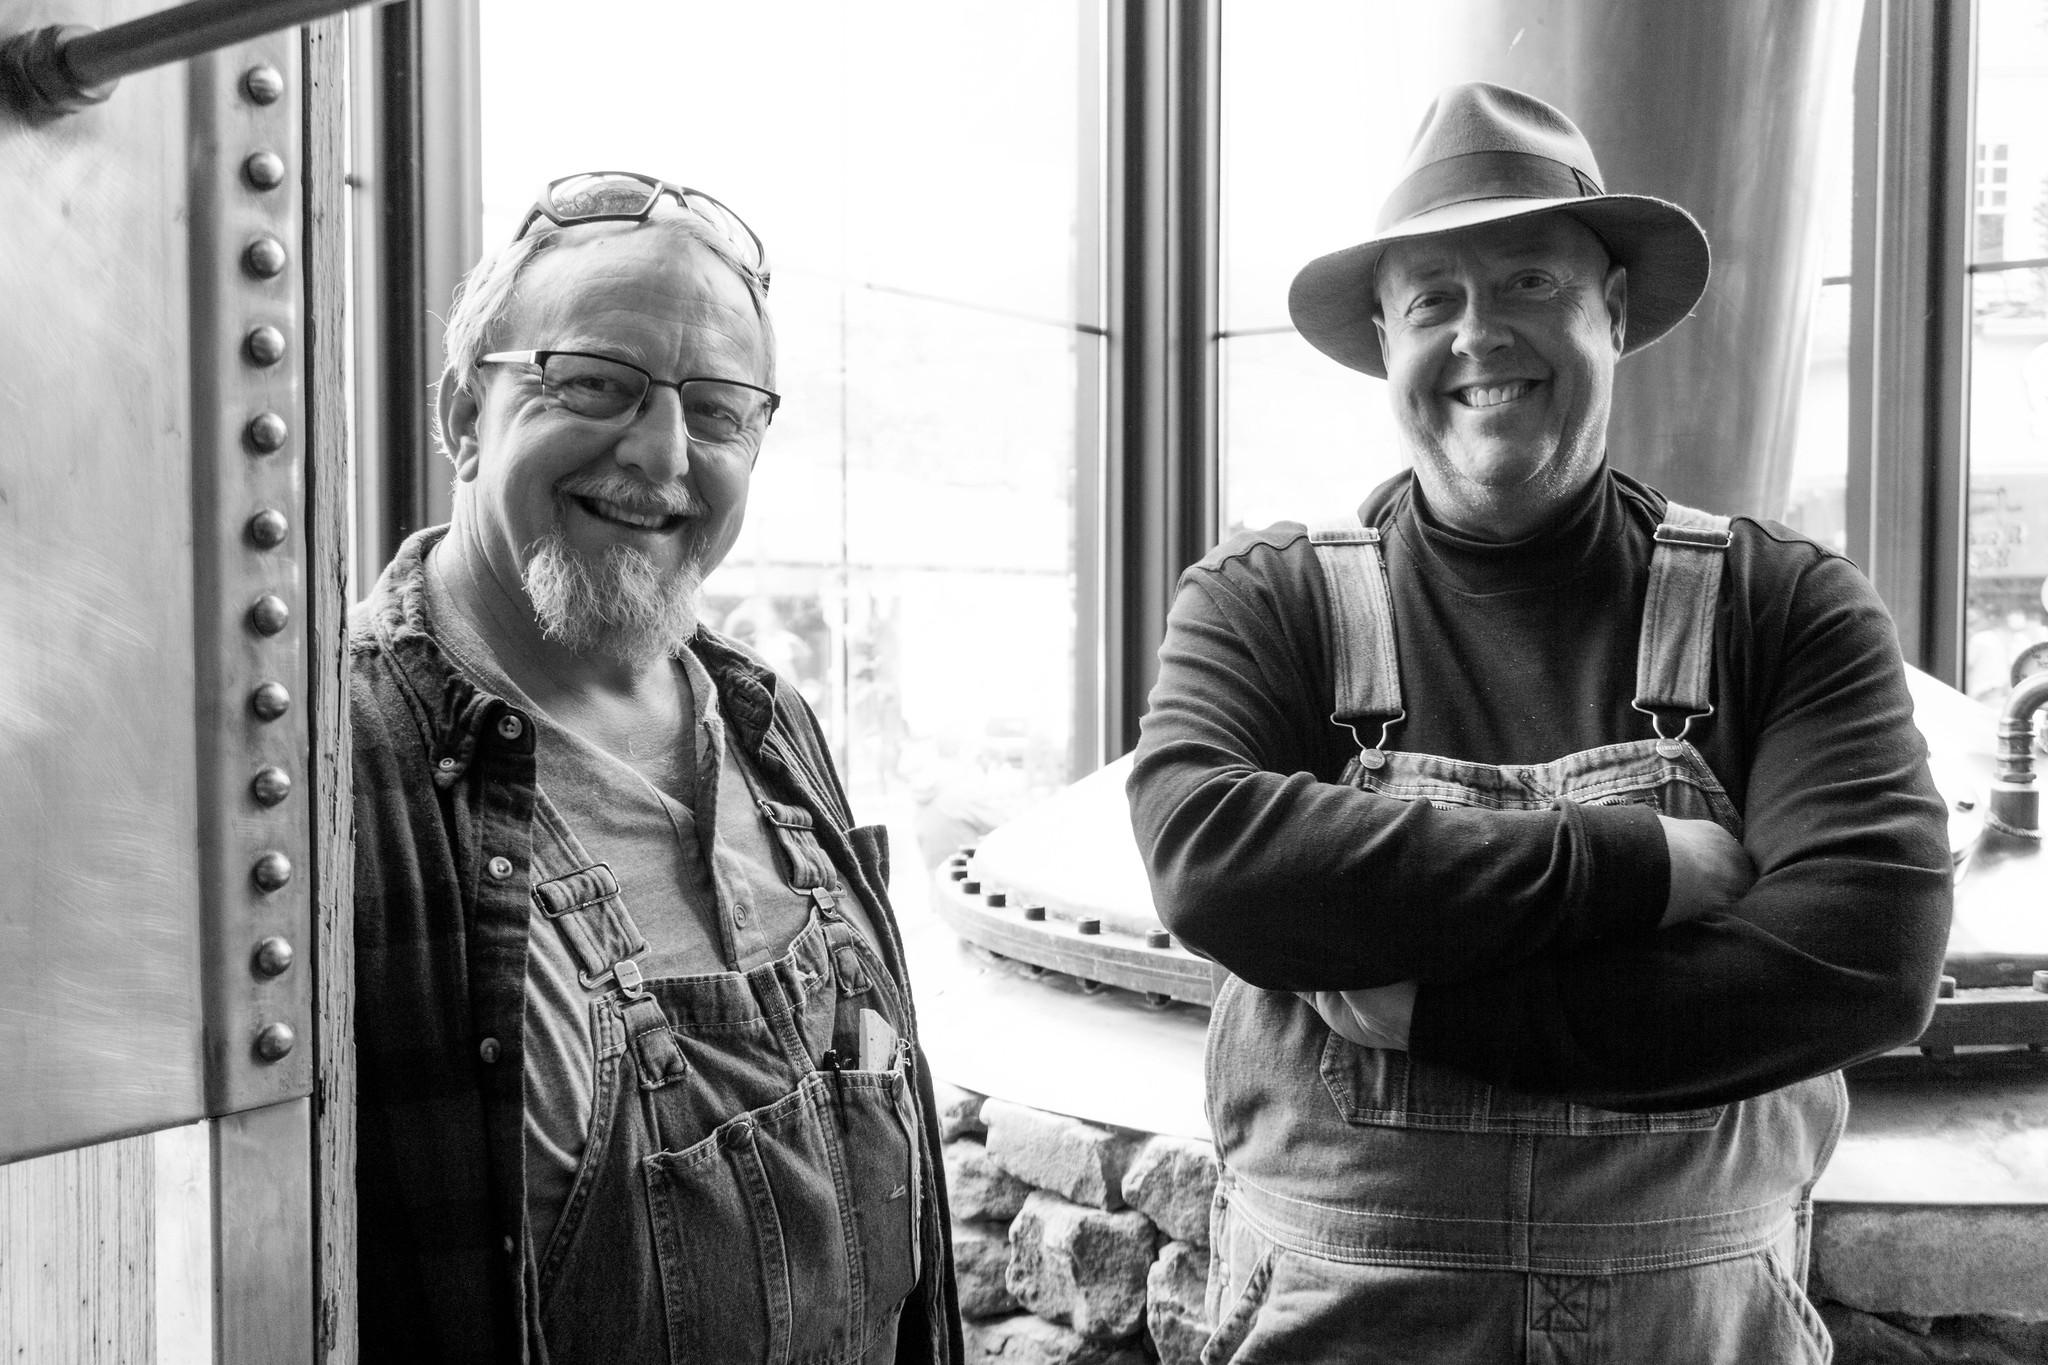 Digger and Mark from Moonshiners - Sugarlands Distilling Blogger Trip, Gatlinburg, Tenn., May 5 -7, 2017